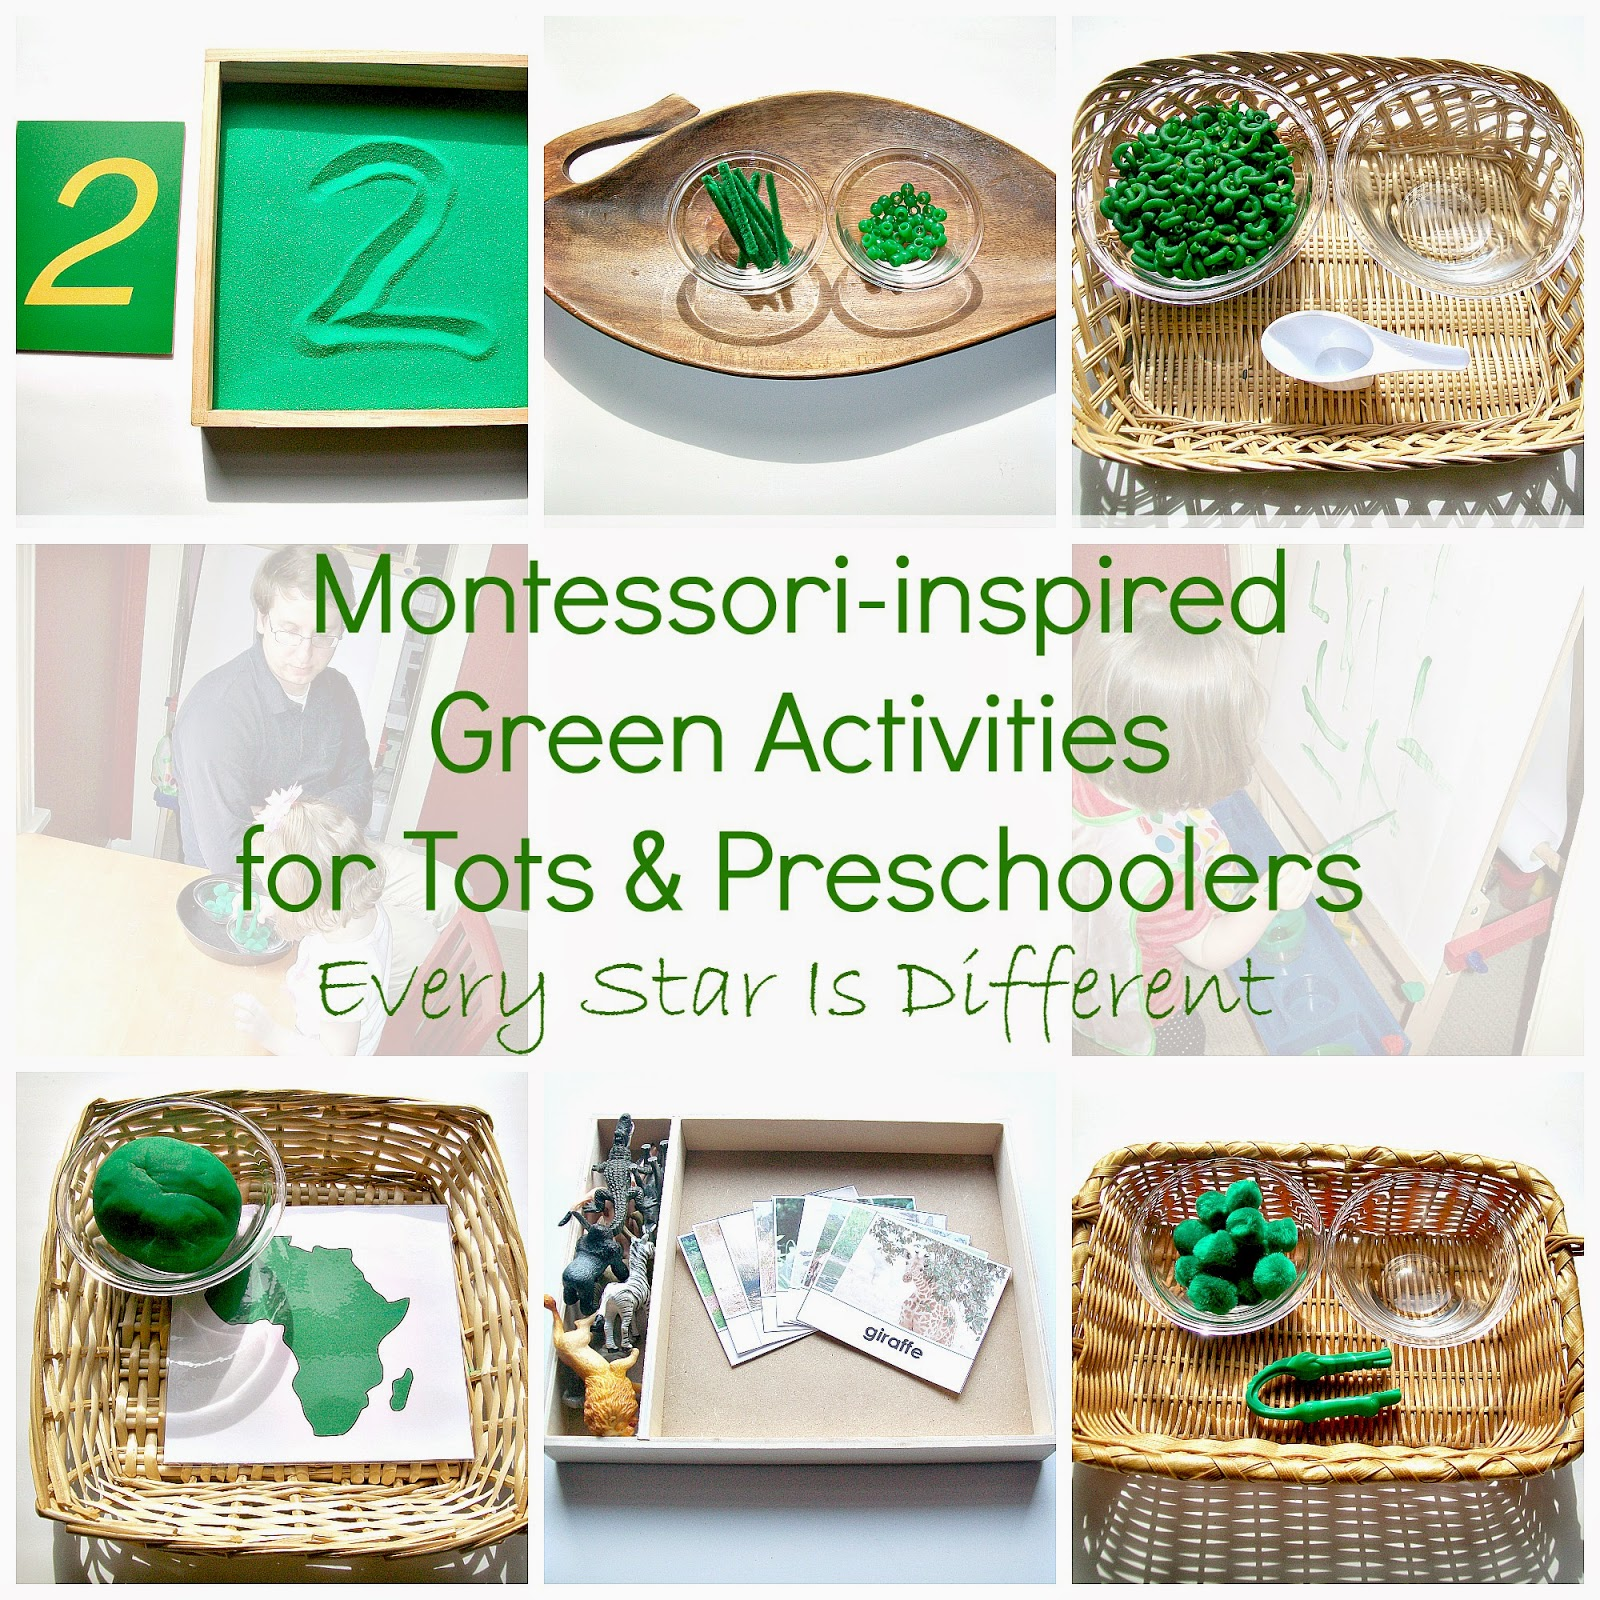 Montessori-inspired Green Activities